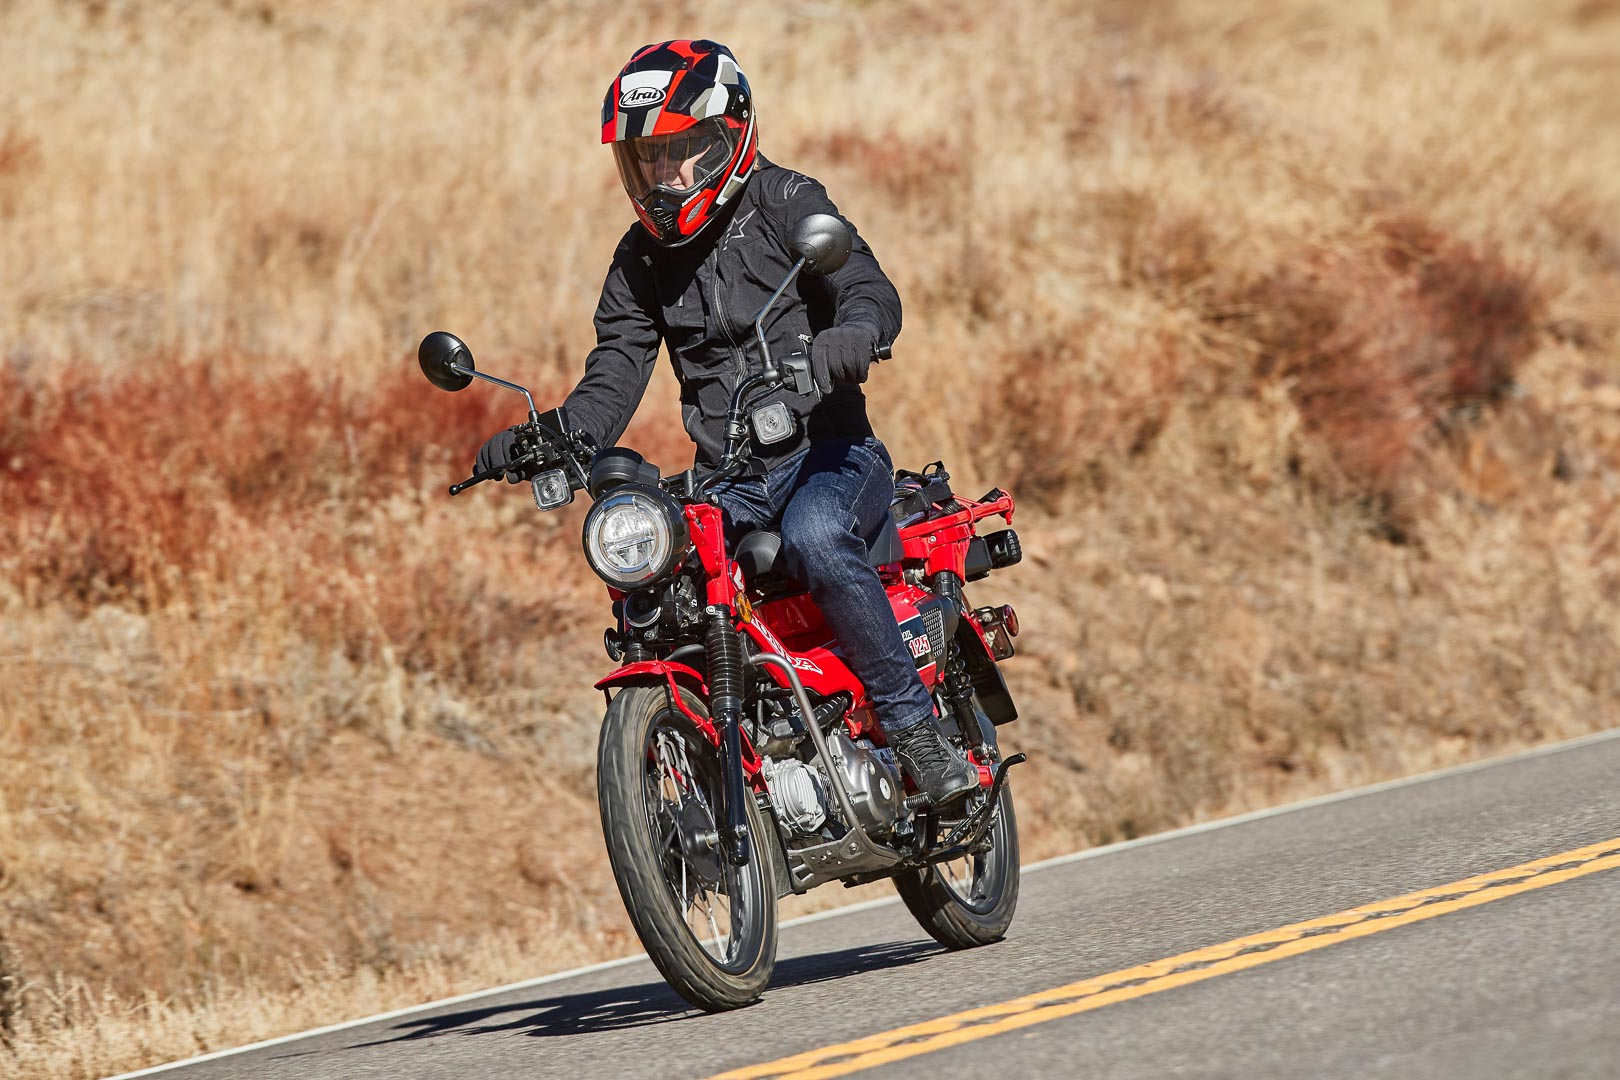 2021 Honda Trail 125 ABS Review: Price